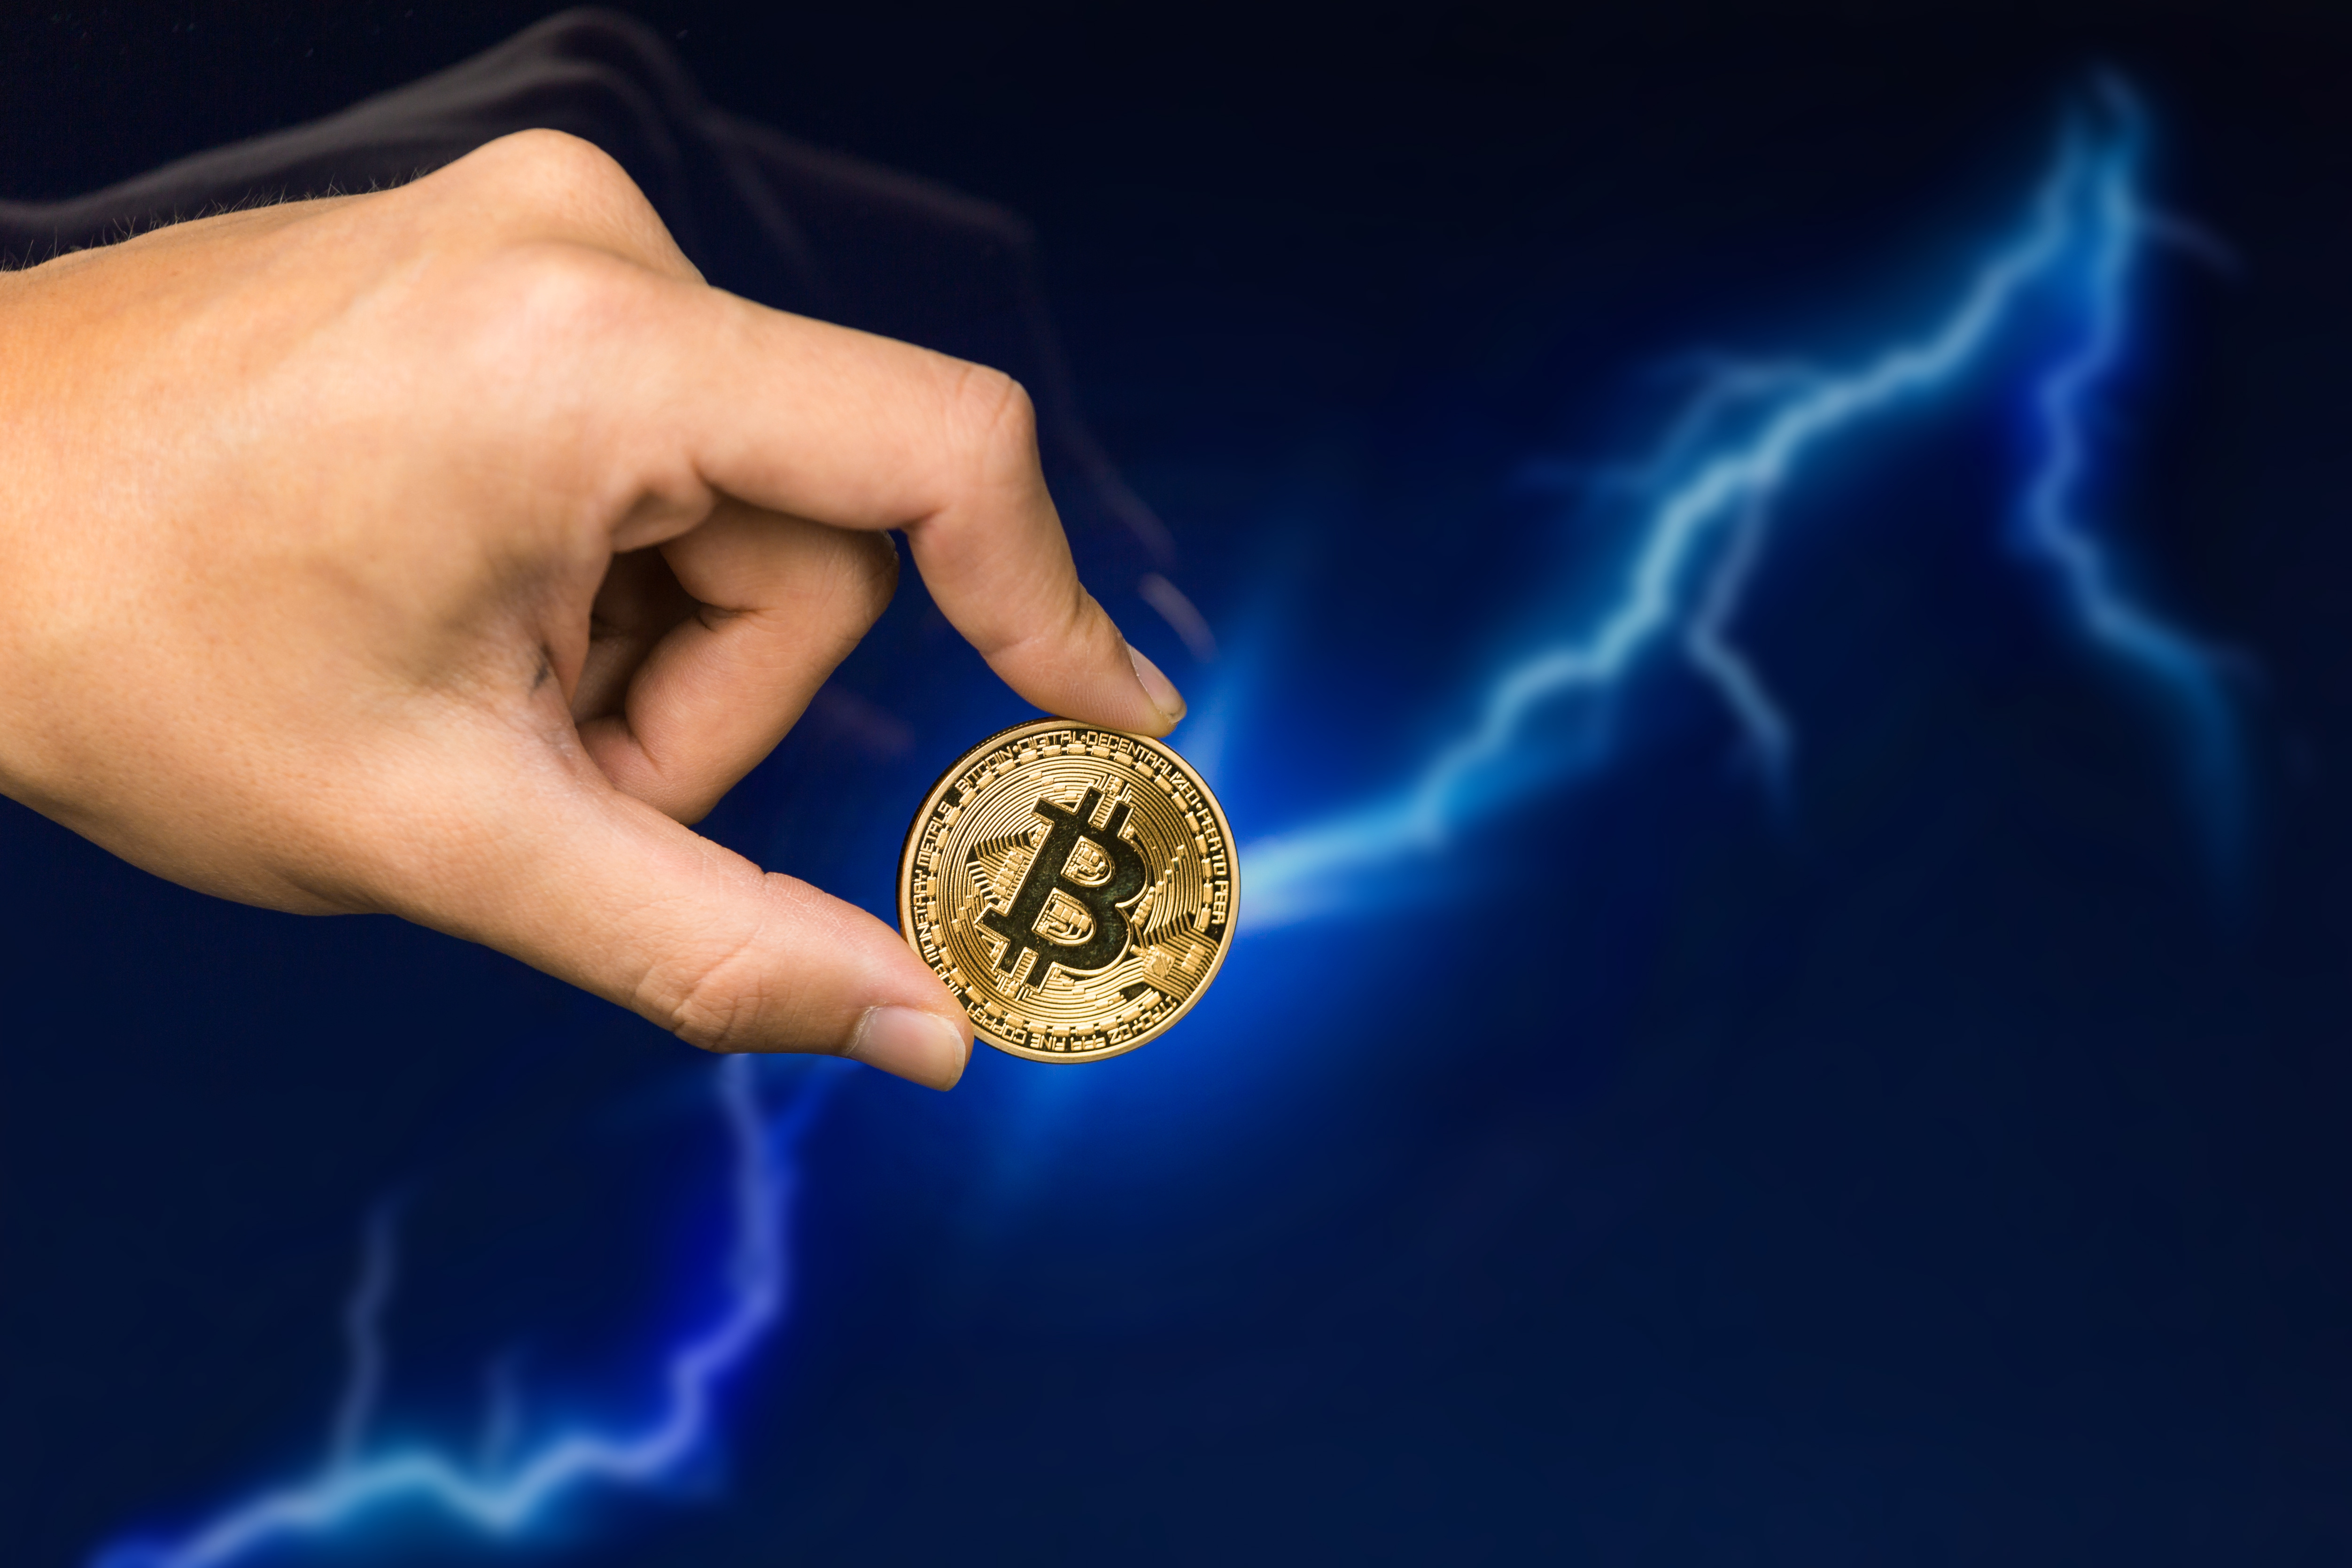 Mexican Retail Giant Grupo Elektra to Add Bitcoin Lightning Payments